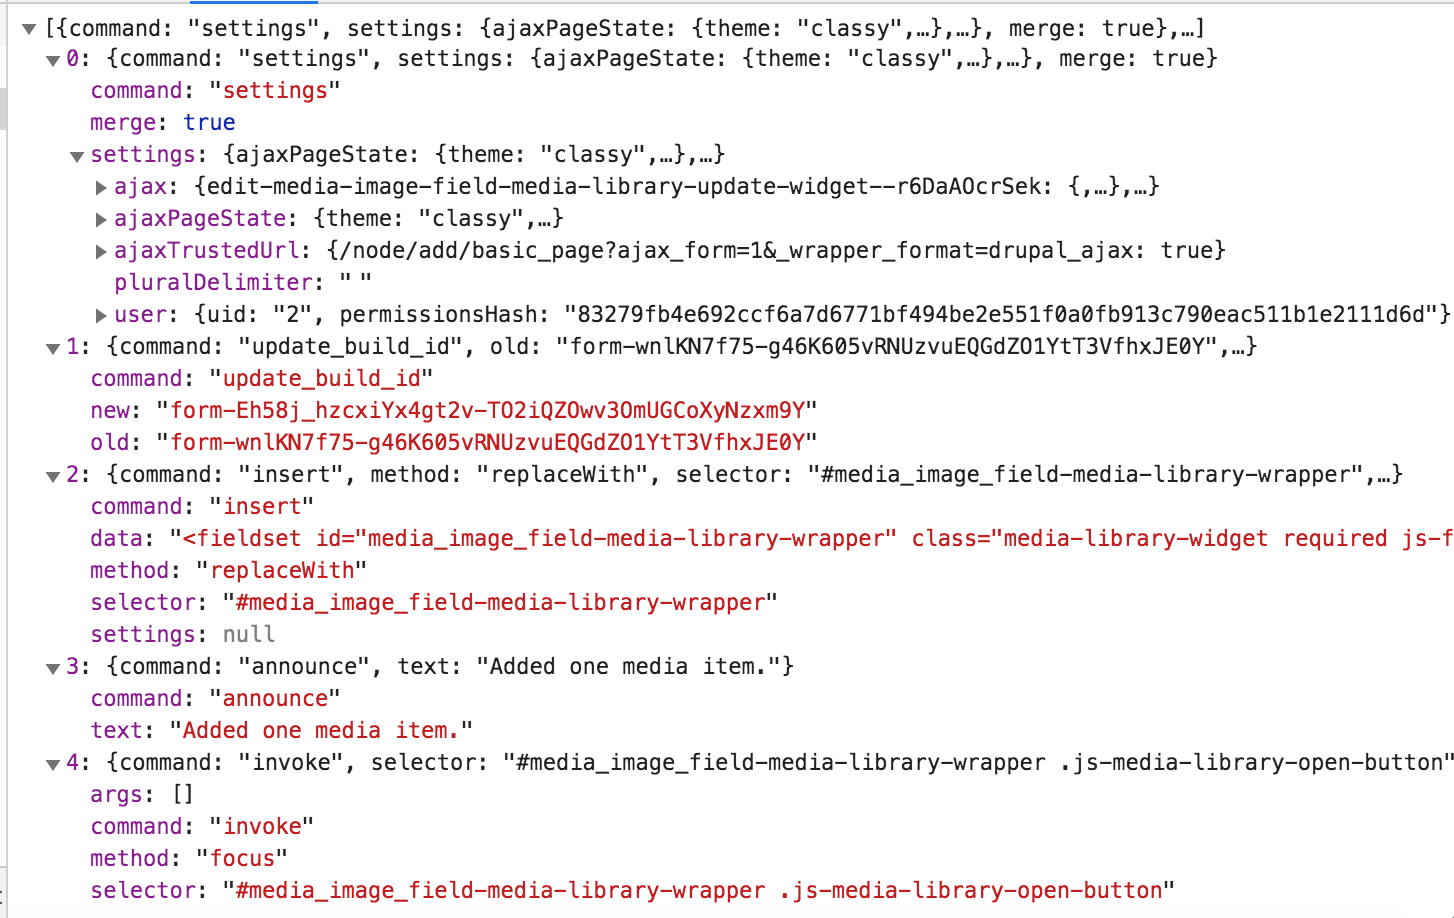 Media library causes validation errors when it is used in a